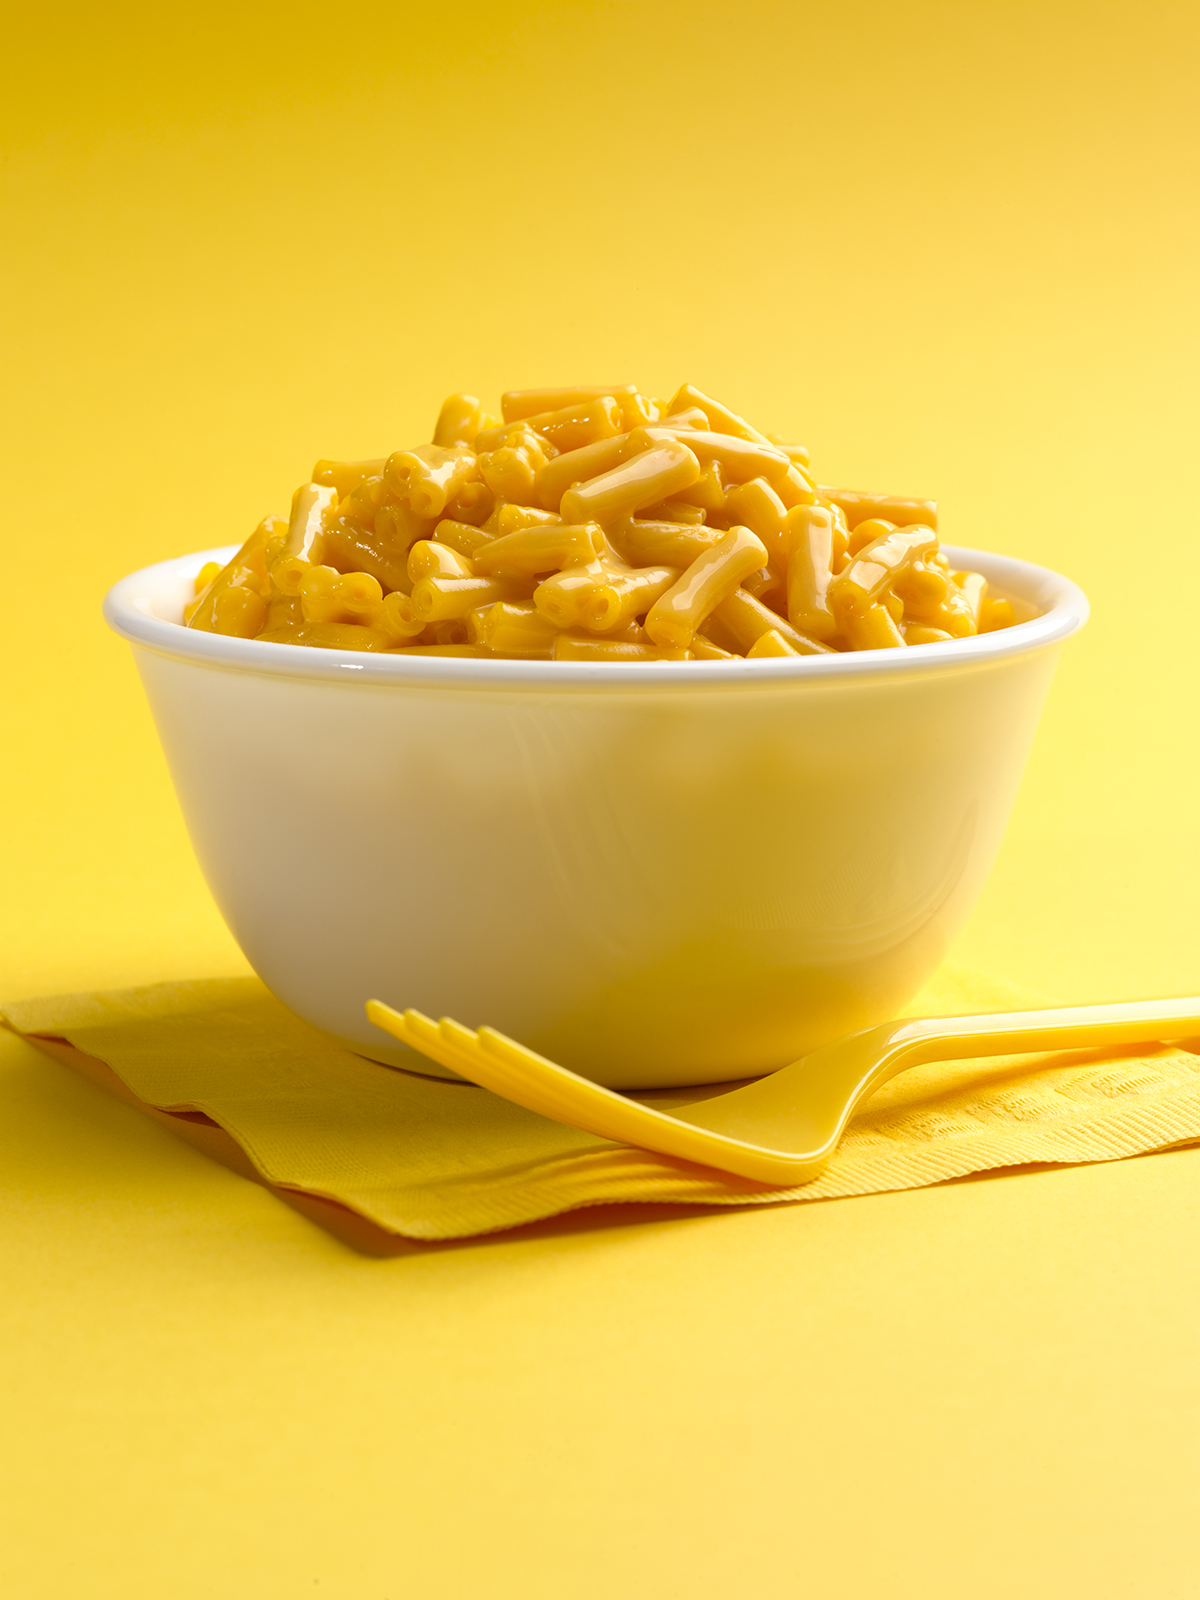 Macaroni for National Mac and Cheese Day